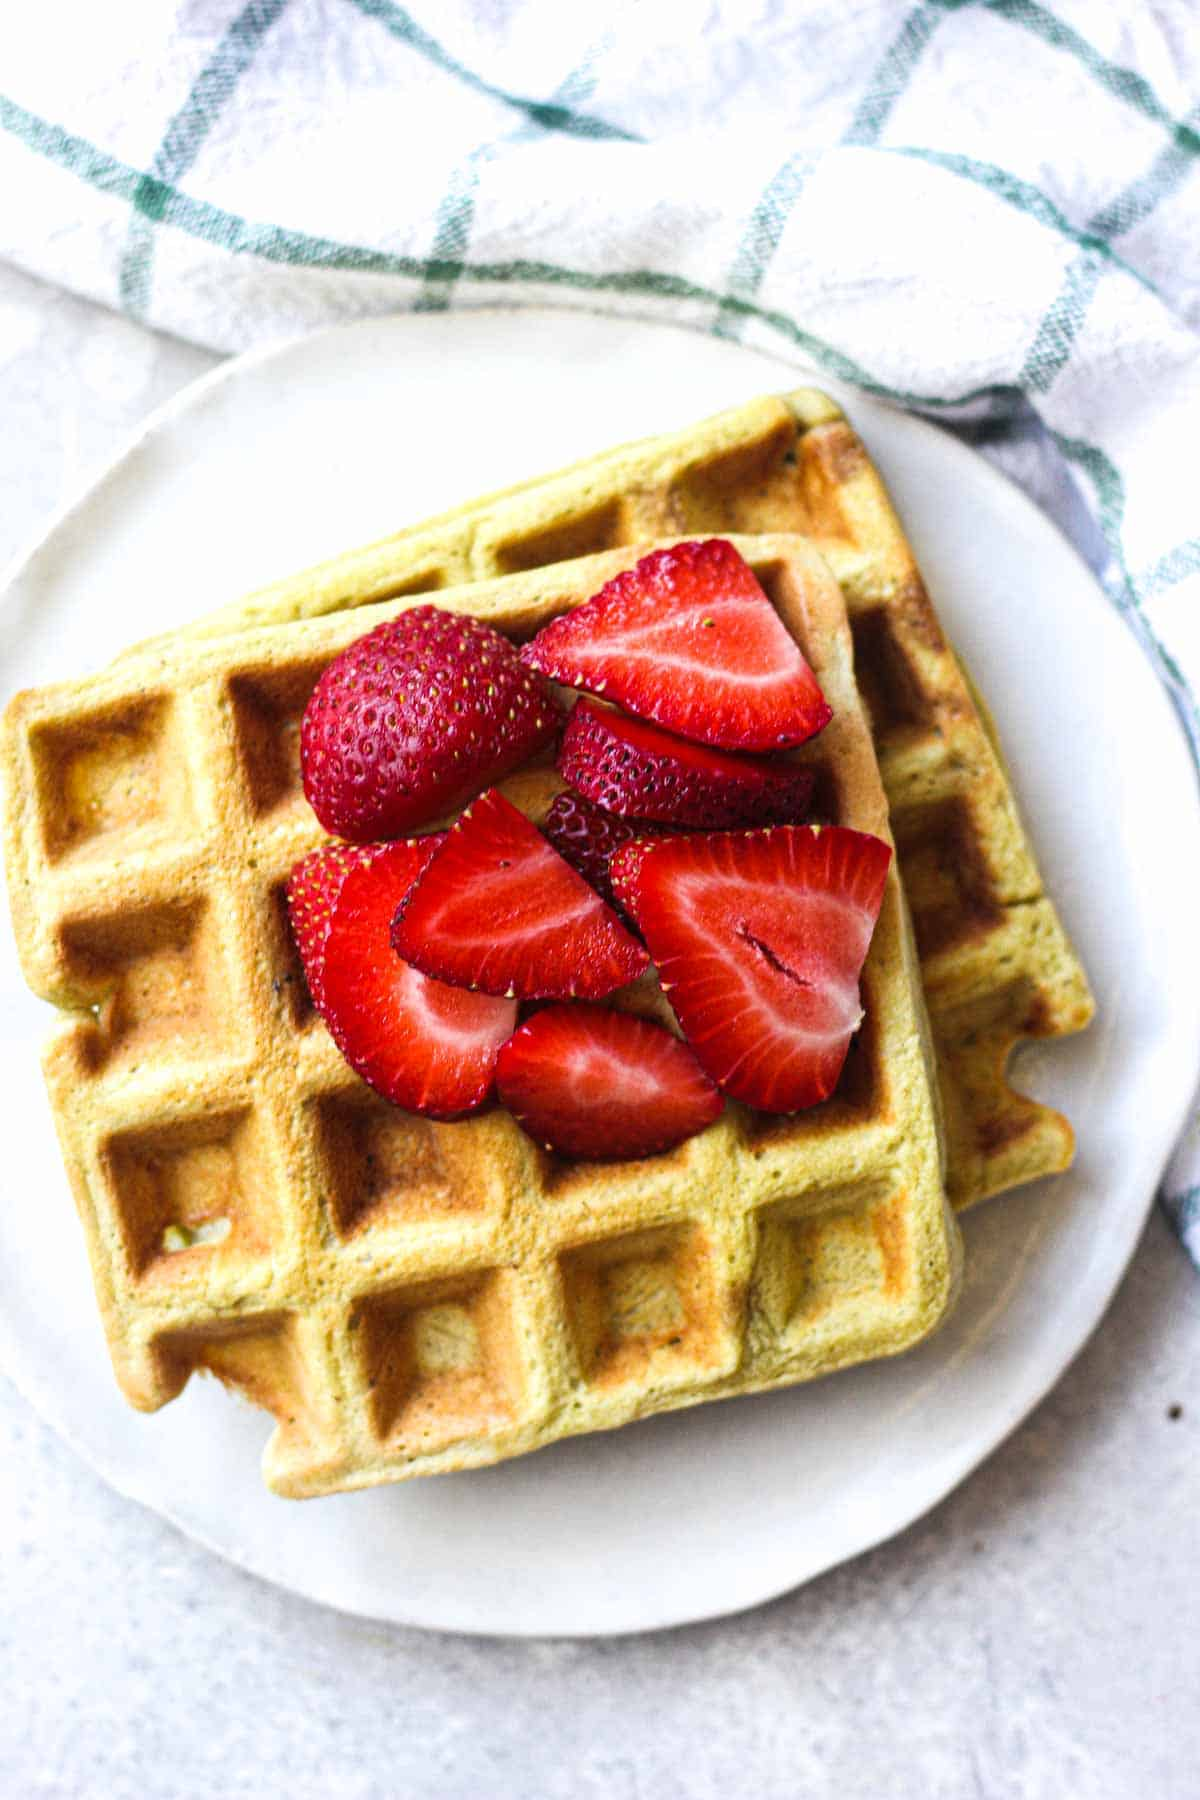 two waffles on a plate with sliced strawberries on top